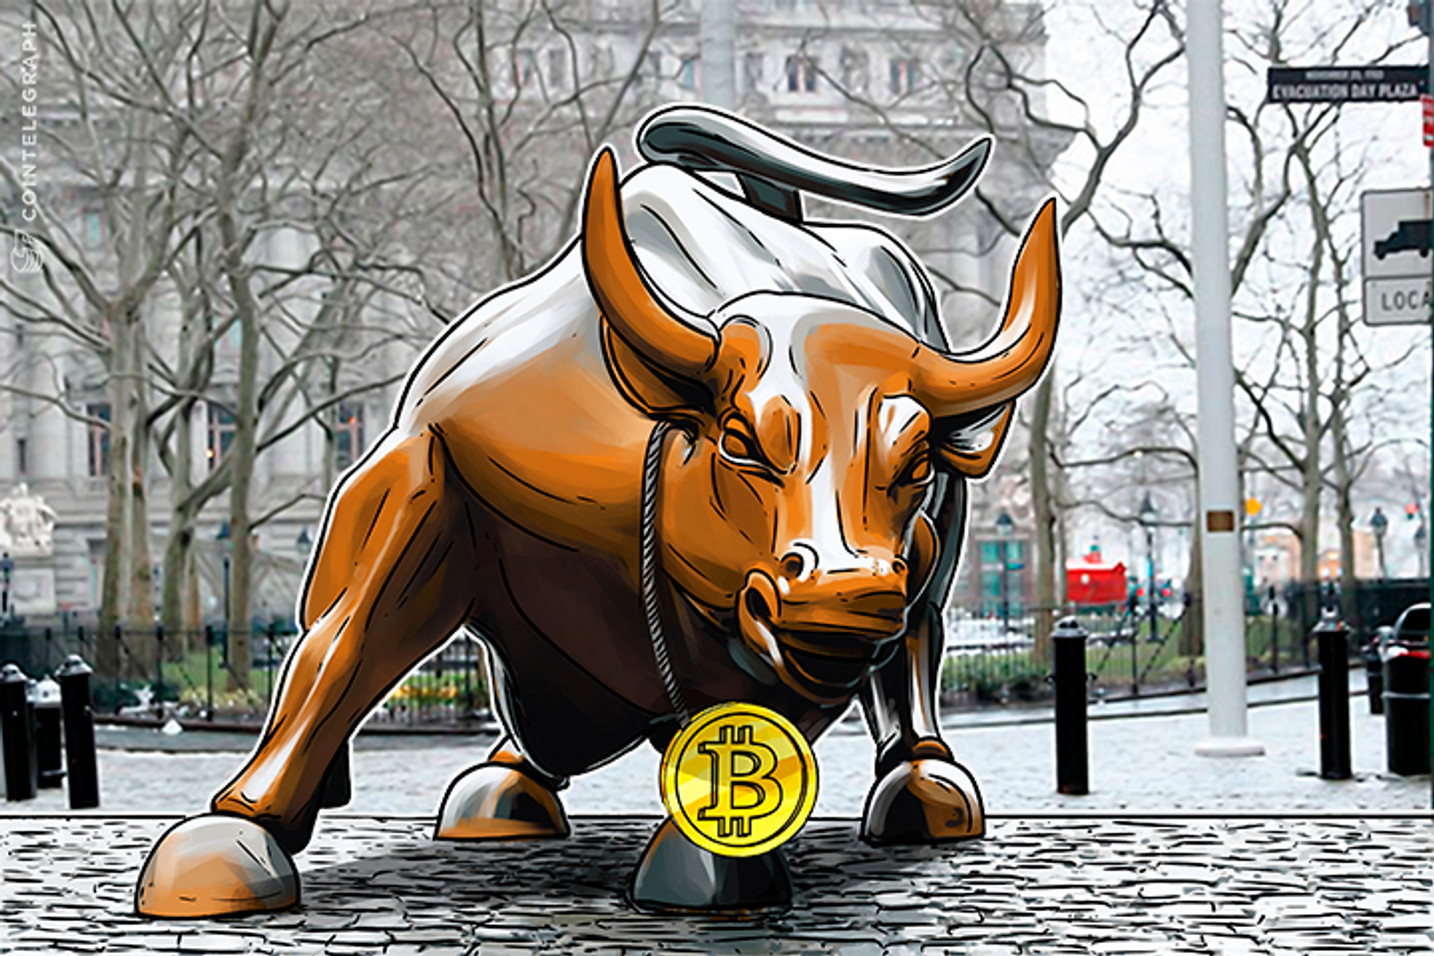 Does Bitcoin Really Need Wall Street?